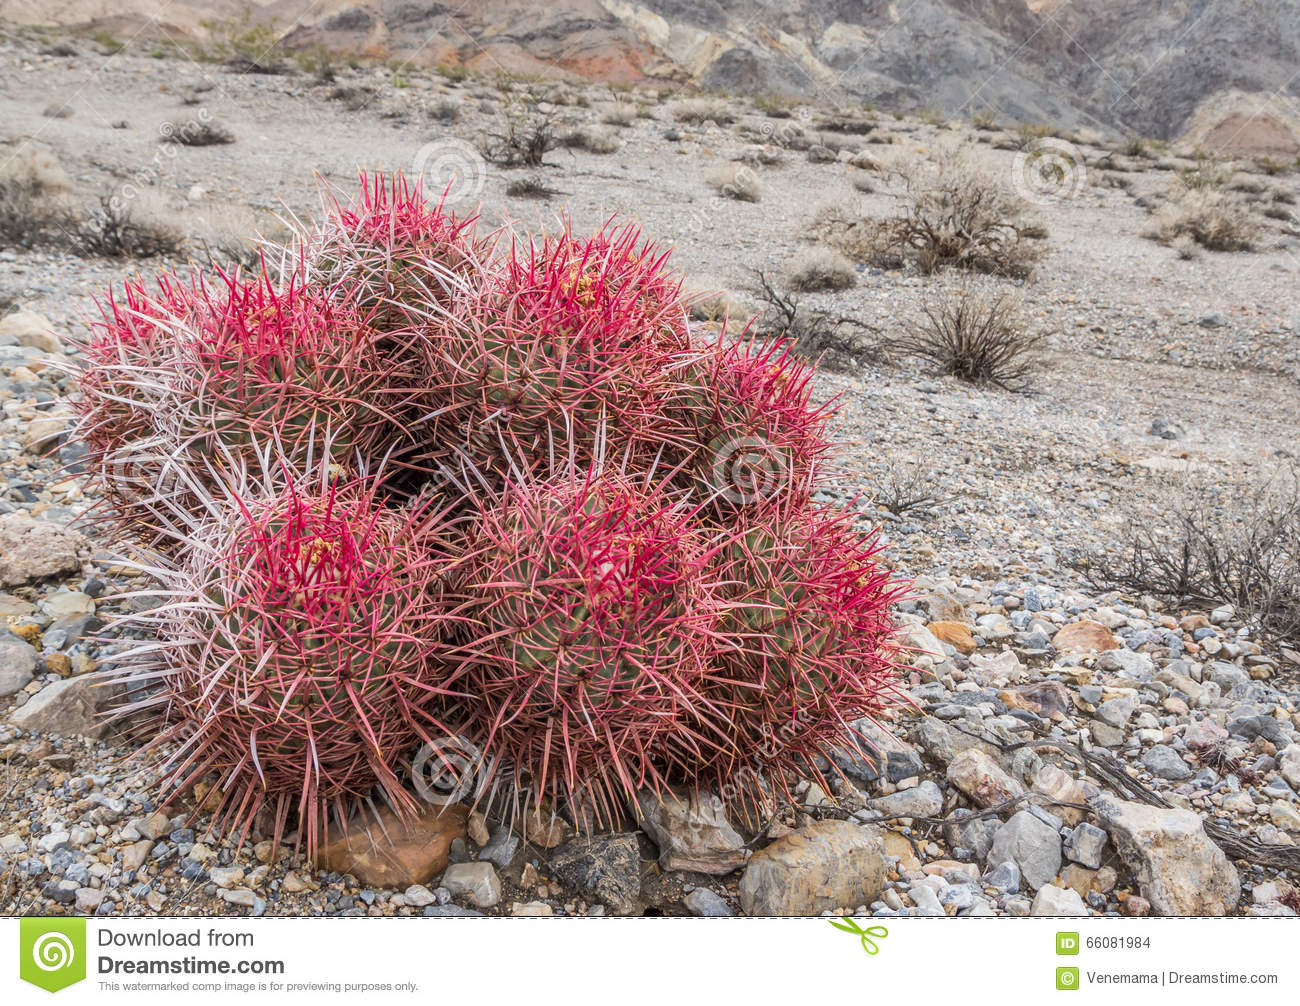 Barrel Cactus In Death Valley National Park Stock Photo.